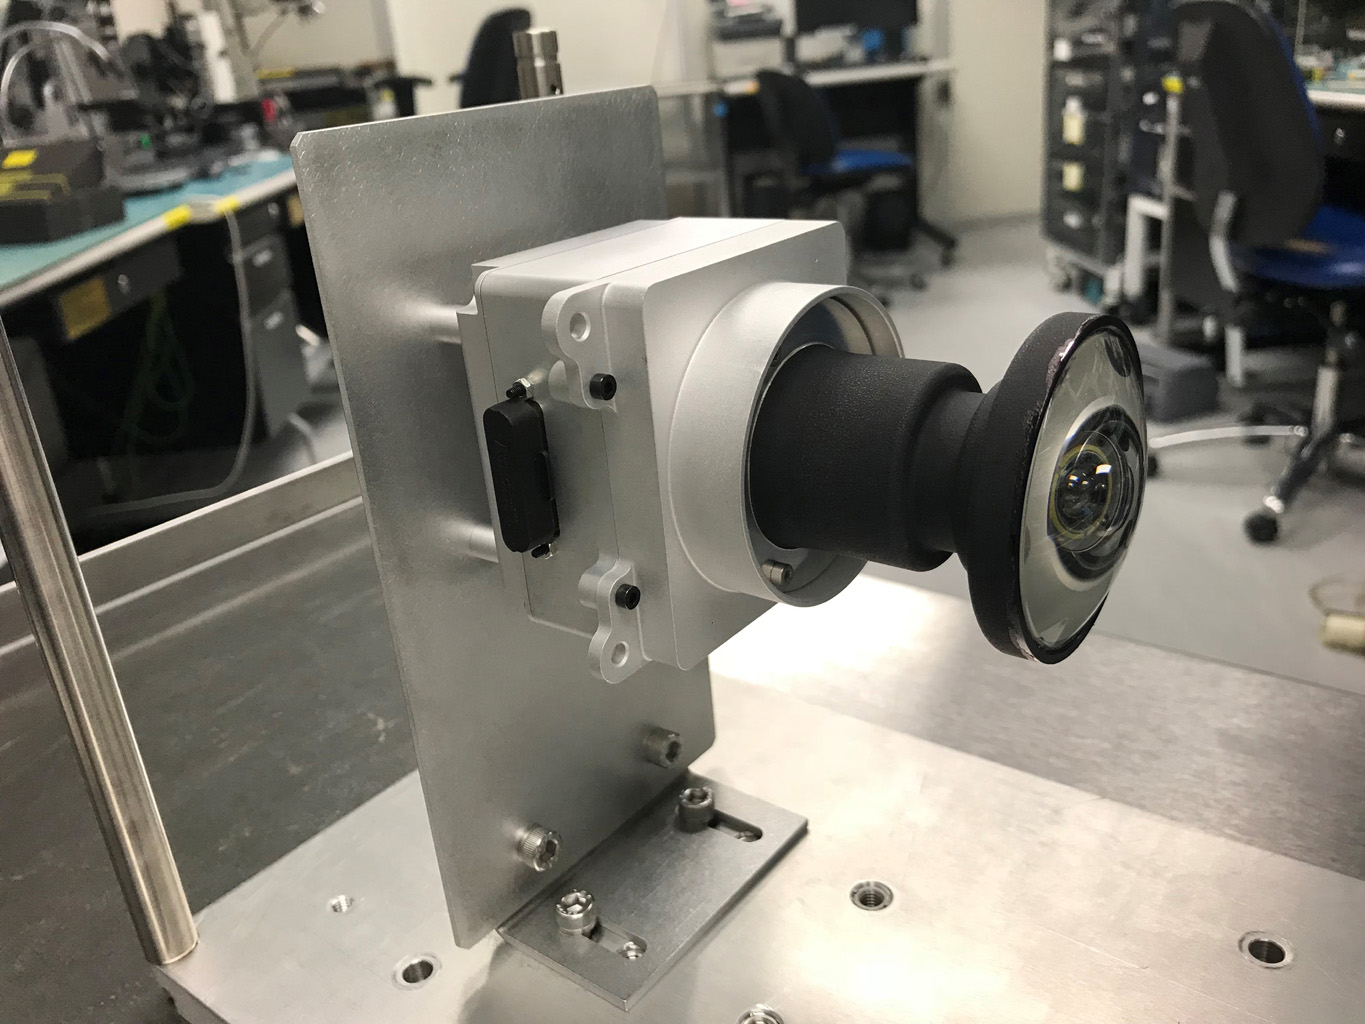 This image shows one of the enhanced engineering cameras with a prototype lens for the Hazcams, which will watch for obstacles encountered by NASA's Mars 2020 rover.